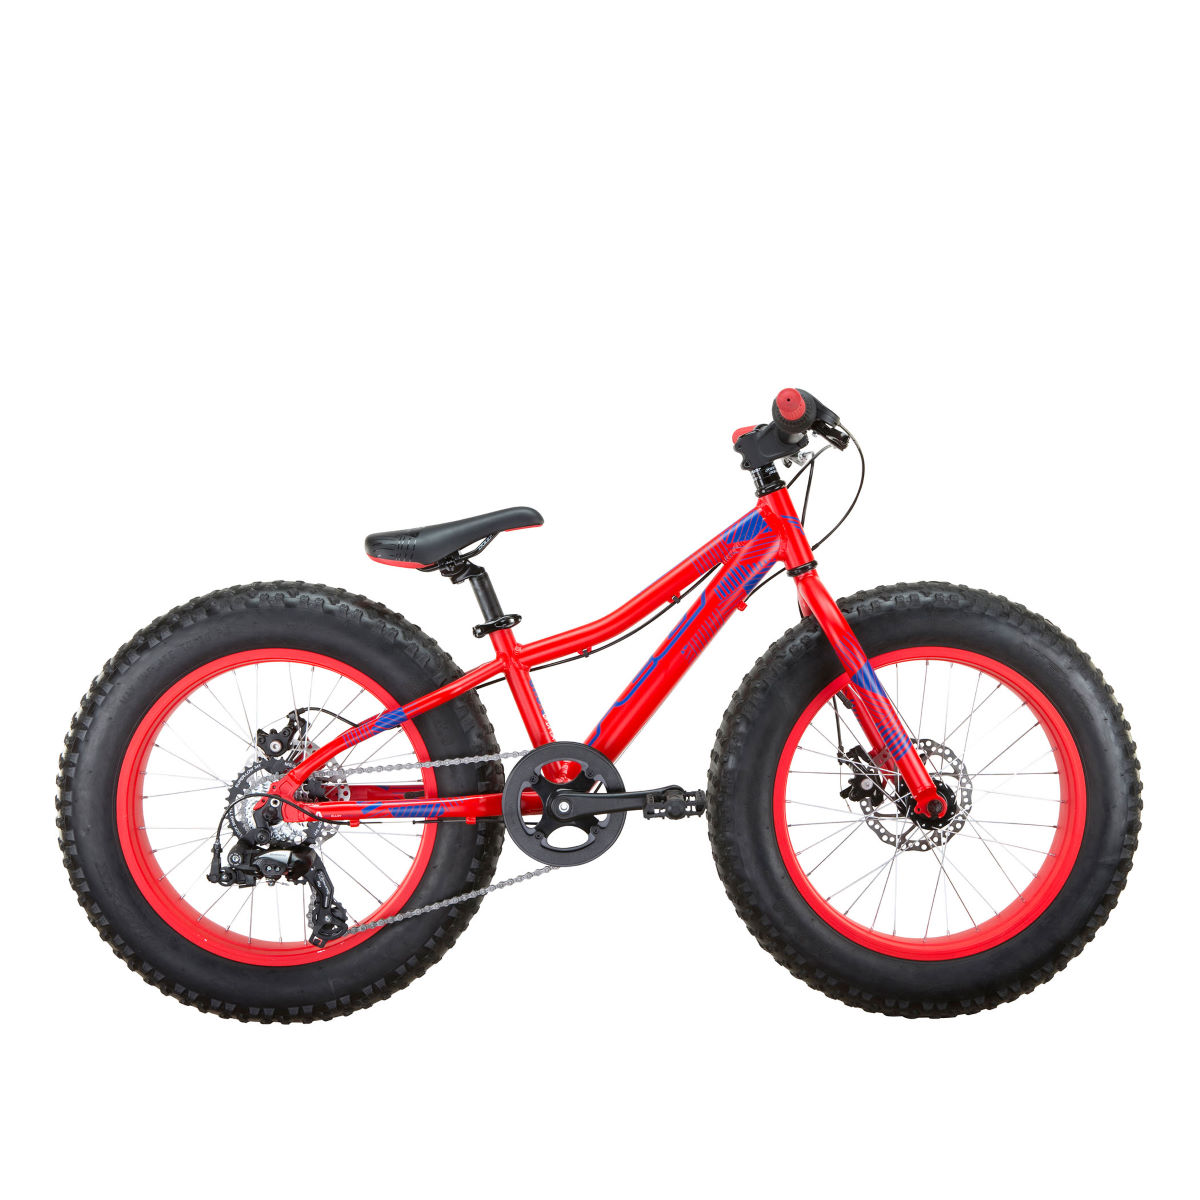 VTT Fat Bike Enfant Felt Cruncher 20 (2017) - 20'' Wheel Stock Bike